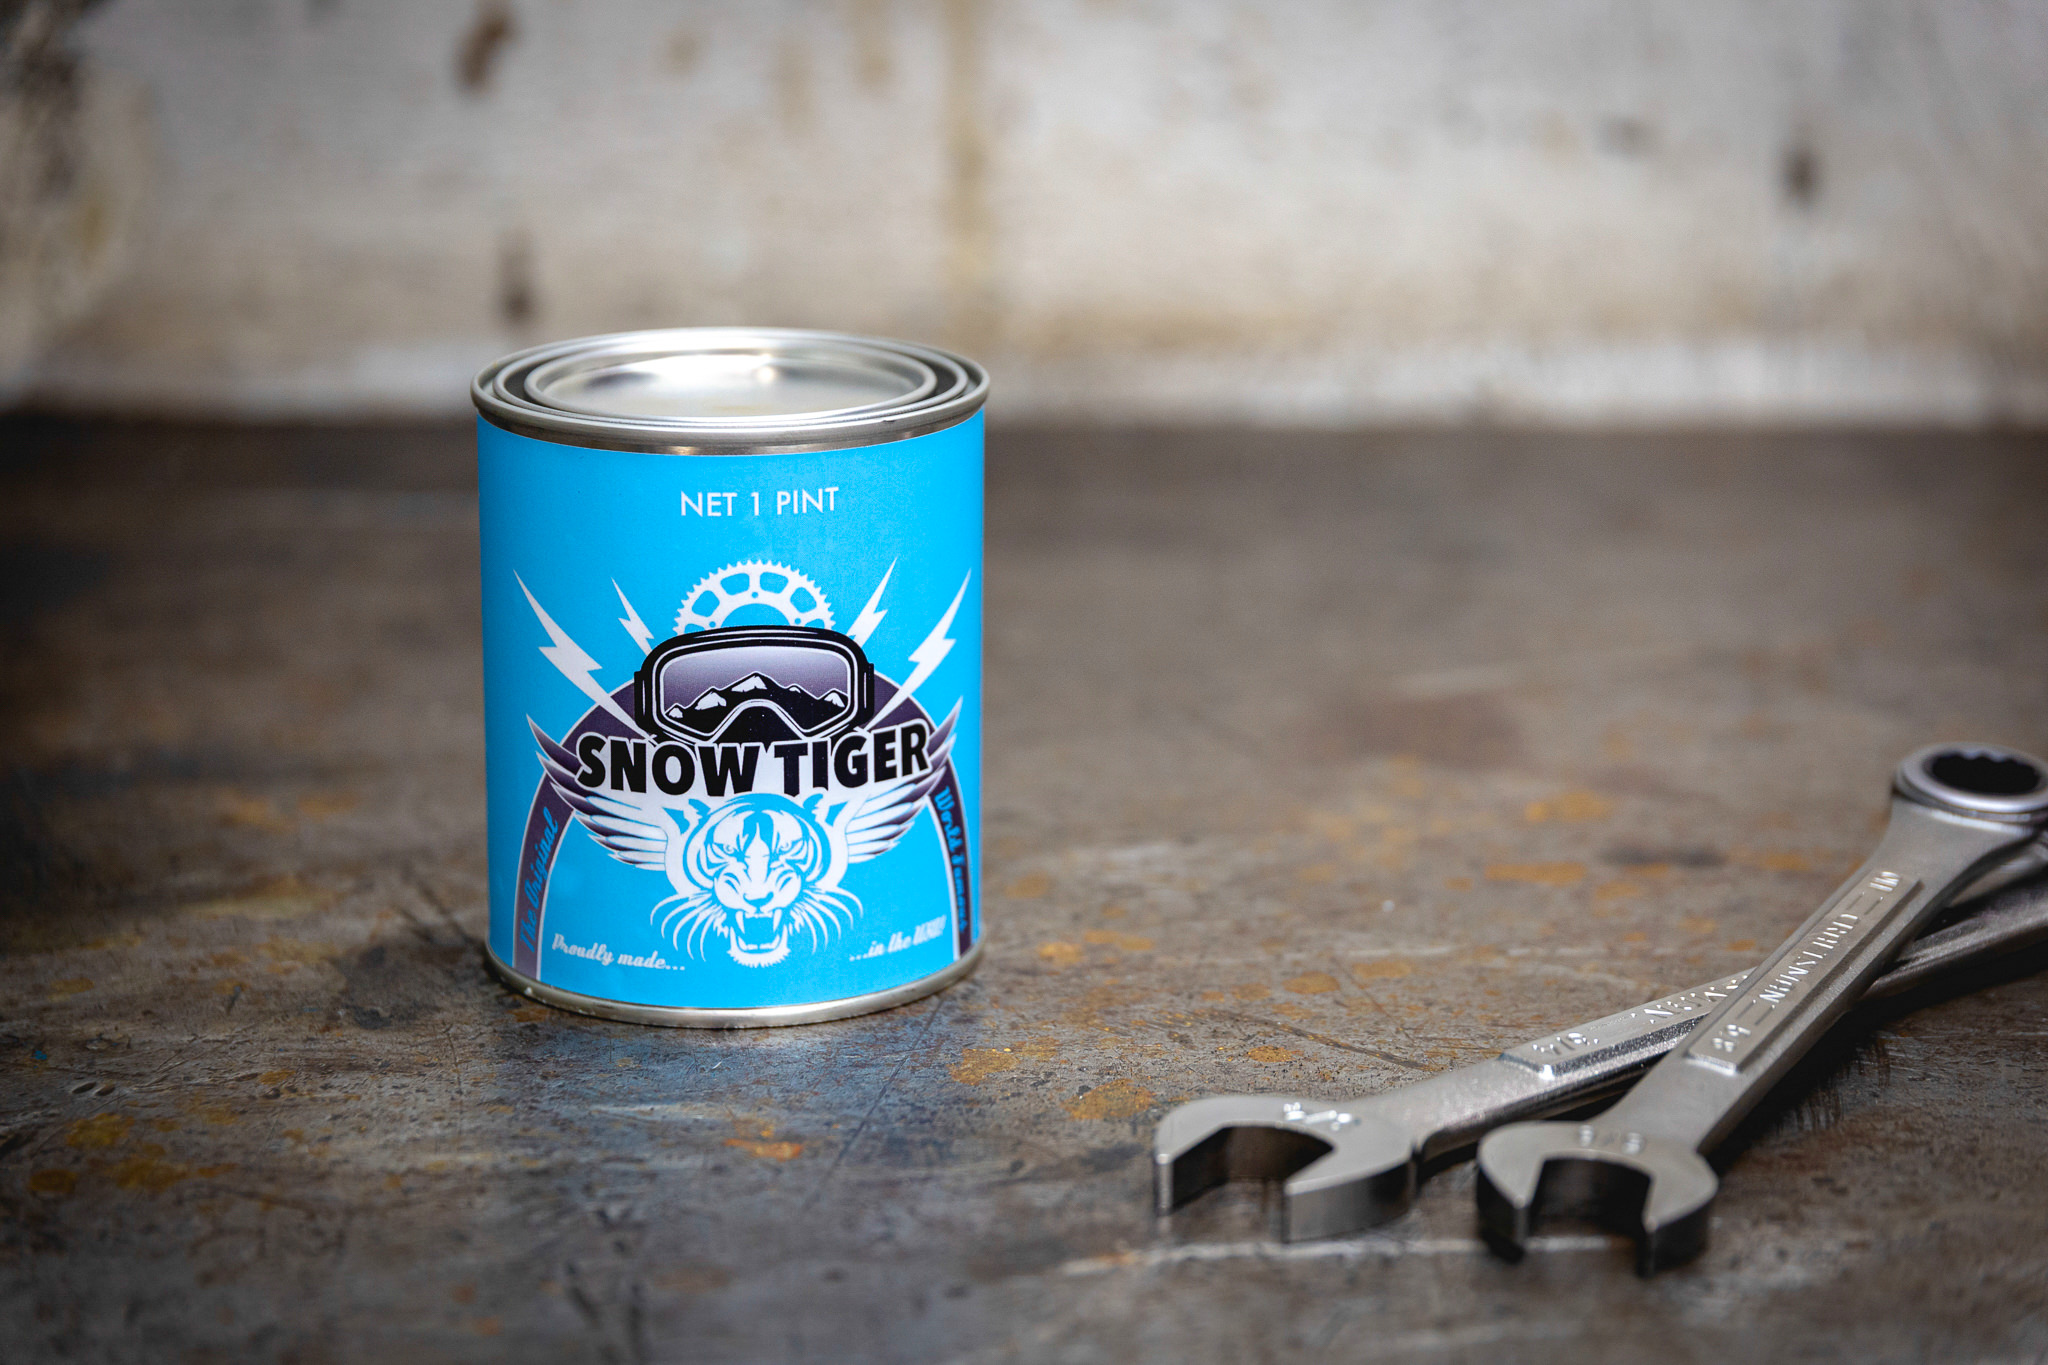 Snowmobile Two-Stroke Oil Scented Candles